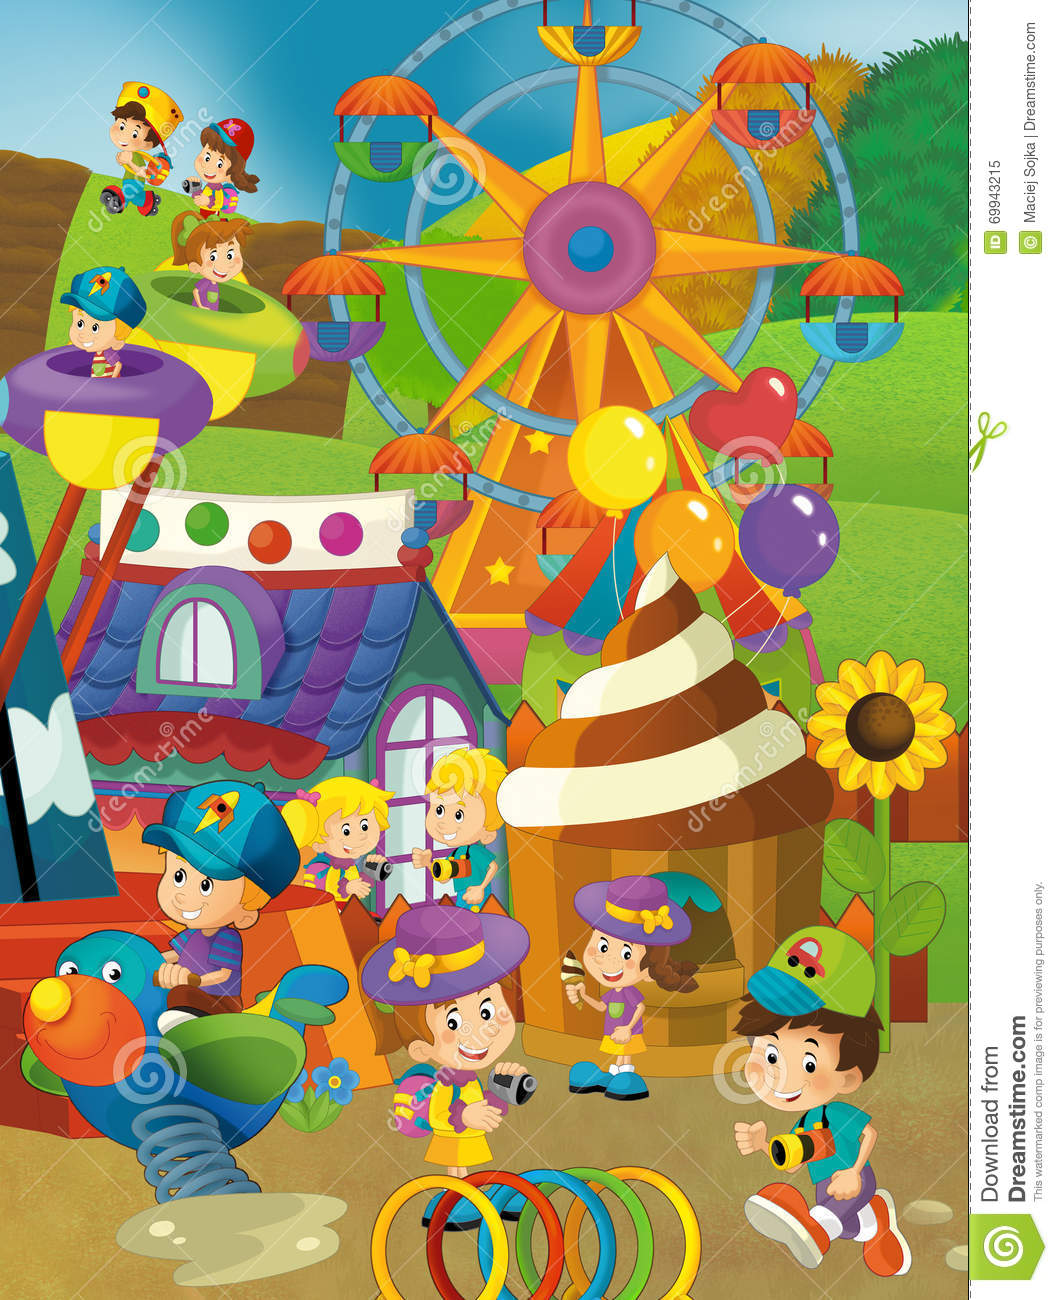 funfair scene Photo about happy and colorful traditional illustration for children illustration of  kindergarten, colorful, outdoors - 71165527.